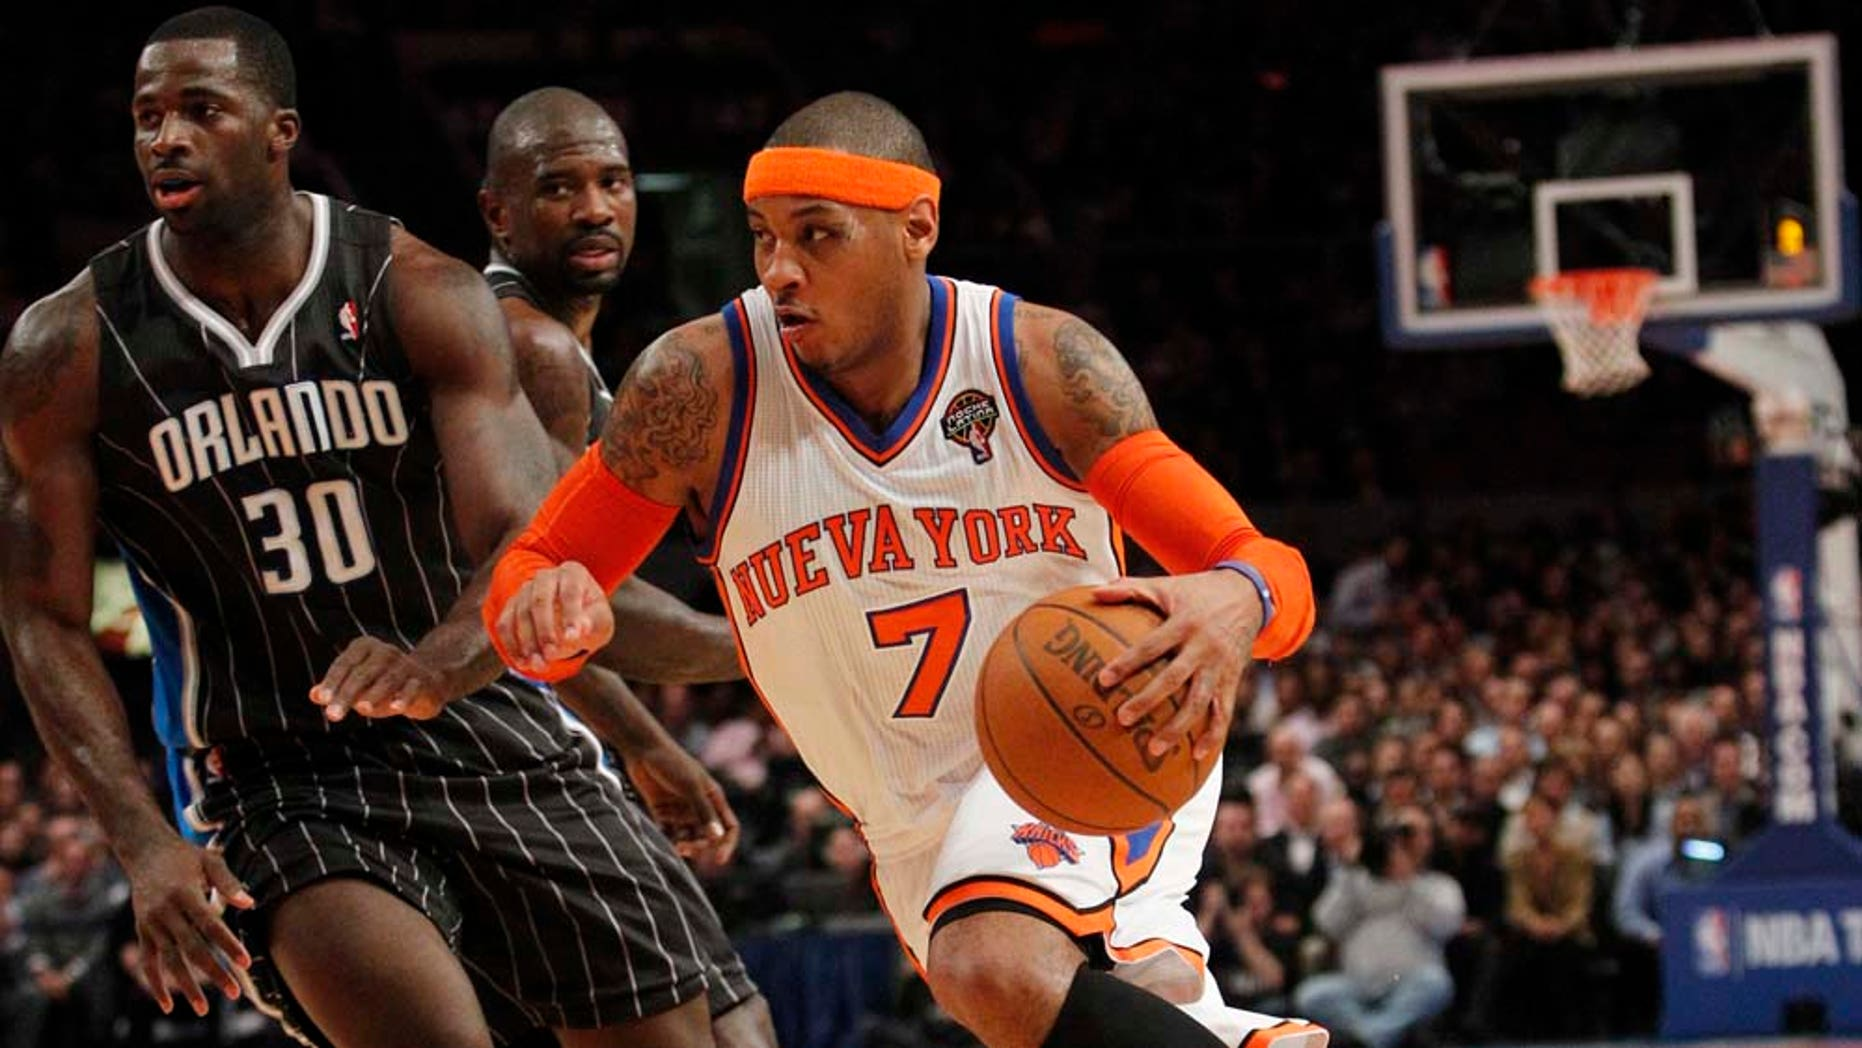 New York Knicks' Carmelo Anthony drives past Orlando Magic's Brandon Bass during the first half of an NBA basketball game on Wednesday, March 23, 2011, in New York. (AP Photo/Frank Franklin II)